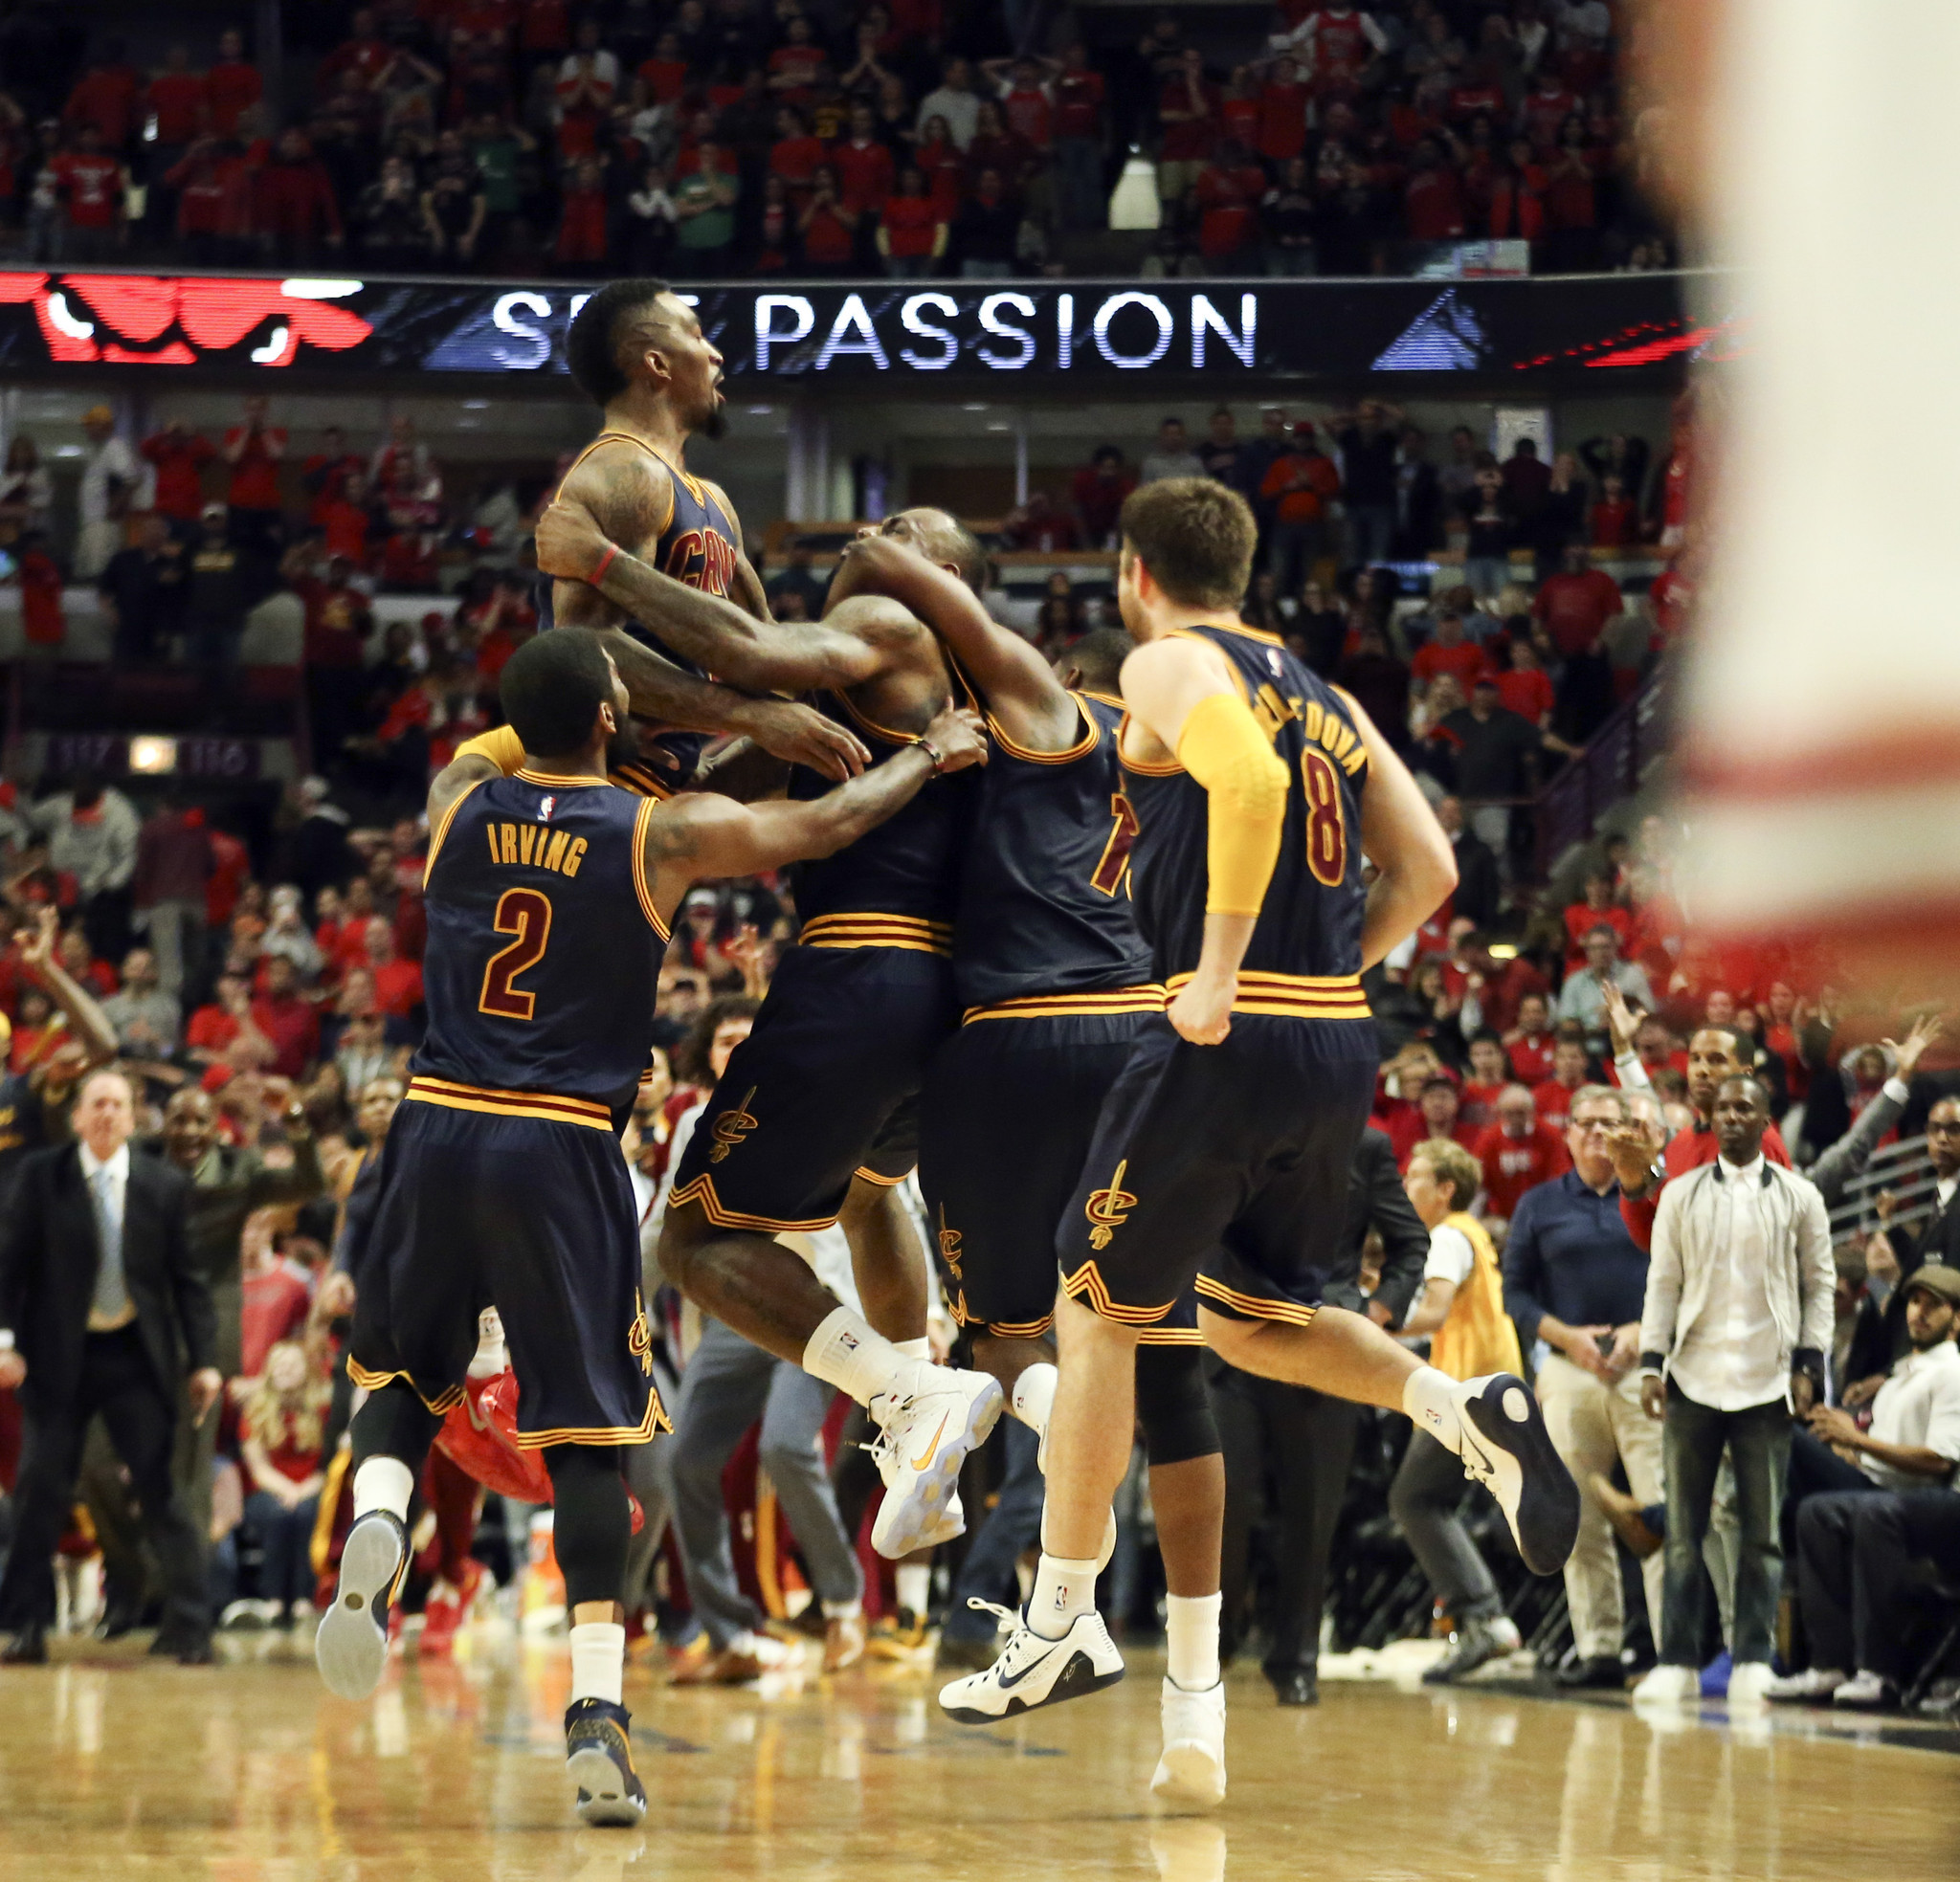 Buzzer-beaters by Bulls, Cavaliers deliver big TV ratings - Chicago Tribune